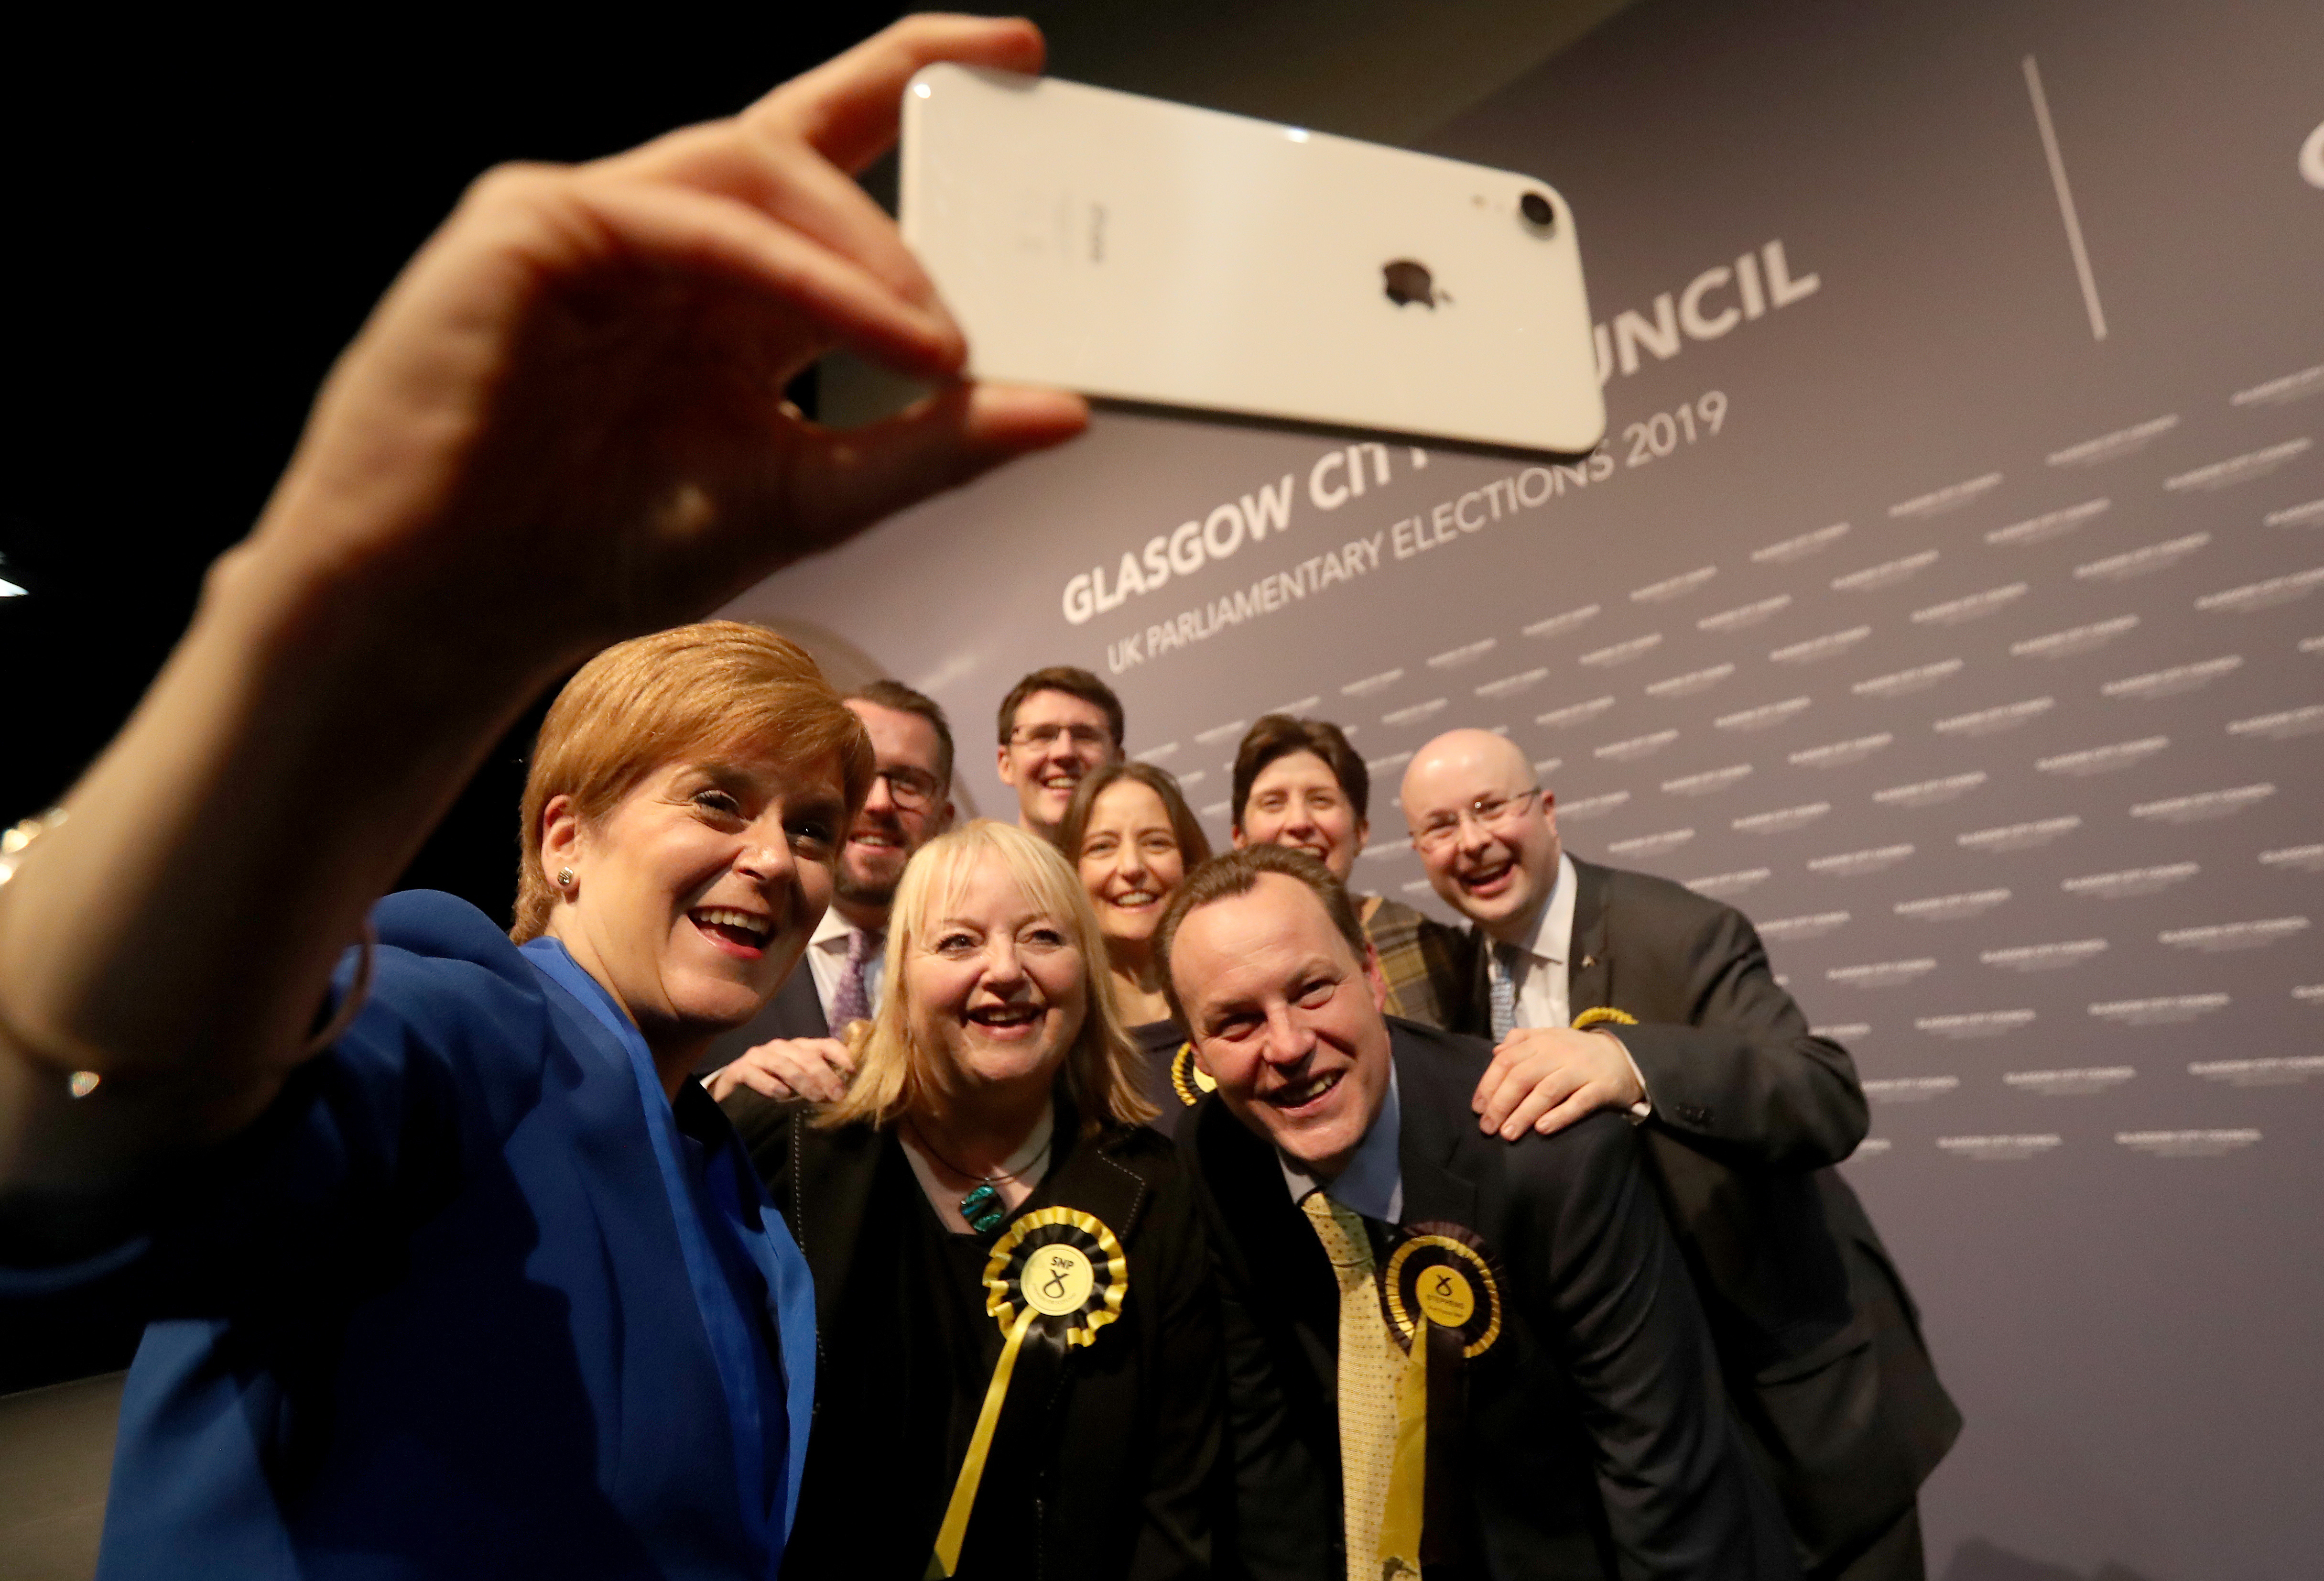 First Minister Nicola Sturgeon takes a selfie with her newly elected MPs at the SEC Centre in Glasgow after counting for the 2019 General Election. (Photo by Andrew Milligan/PA Images via Getty Images)